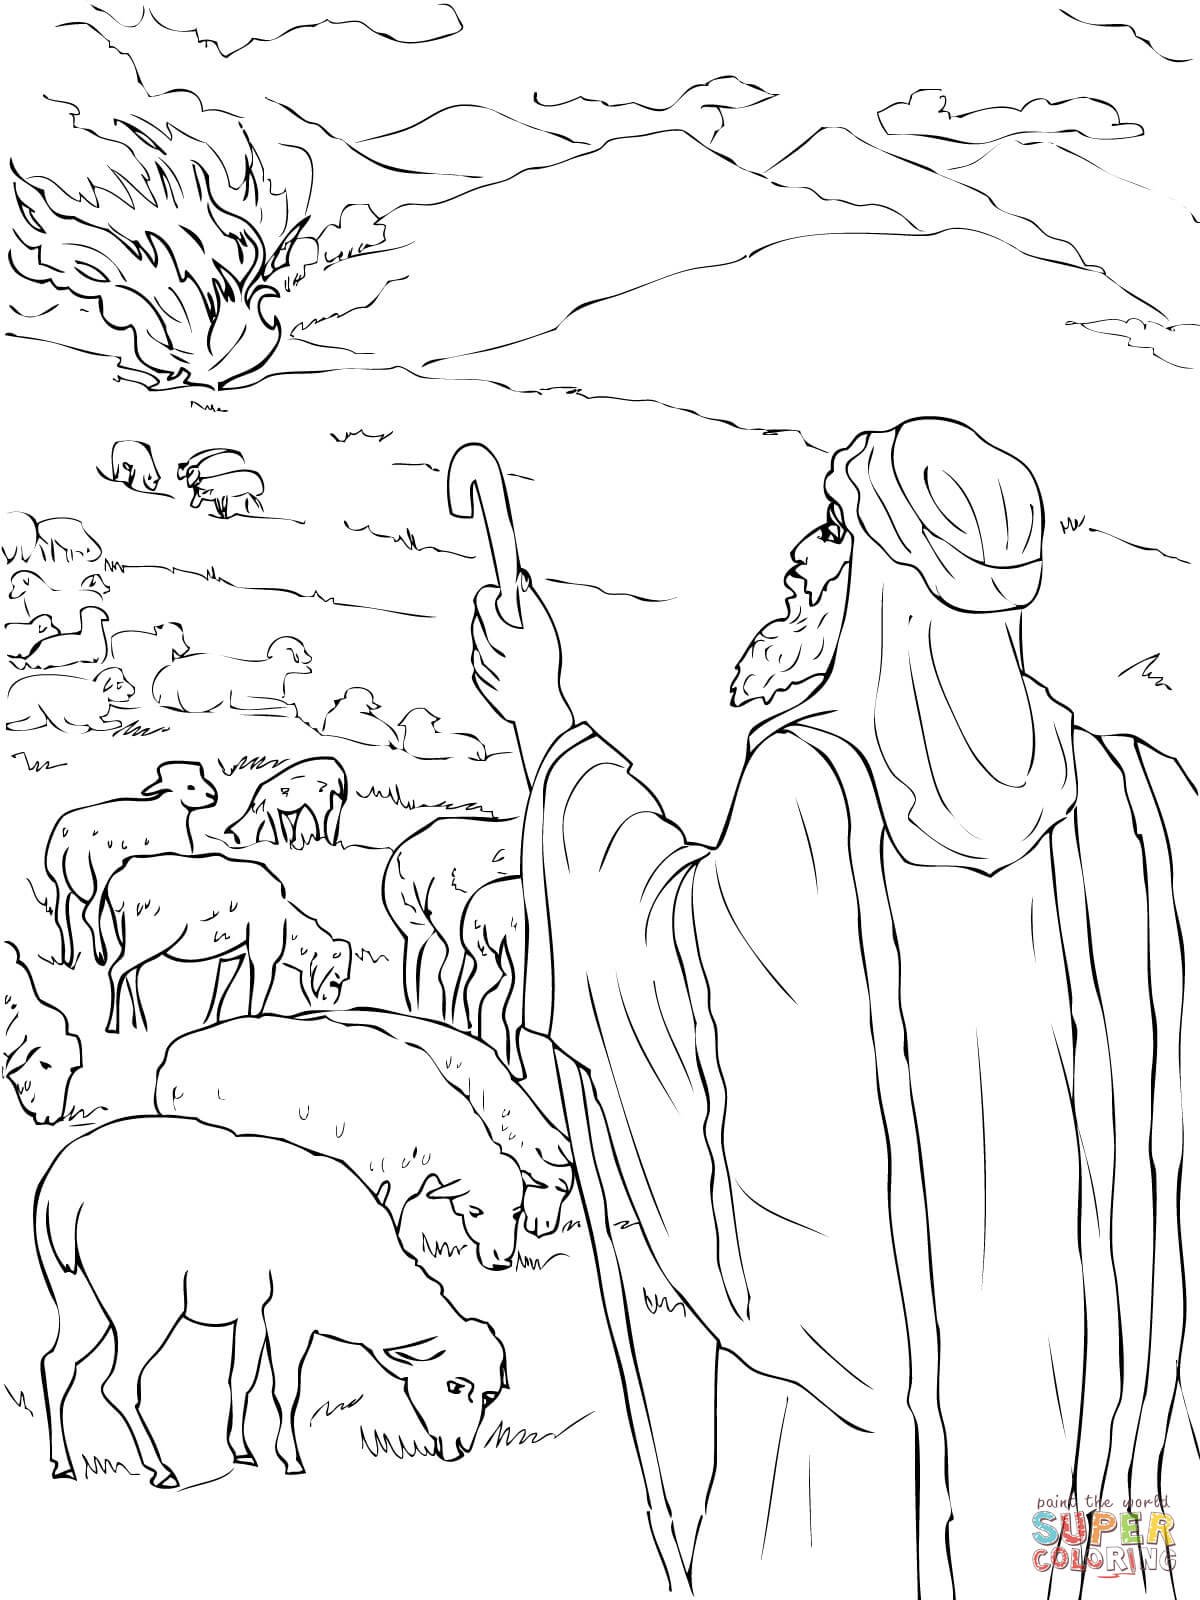 Coloring Pages Moses And The Burning Bush Coloring Pages moses and burning bush coloring page az pages sees the free printable